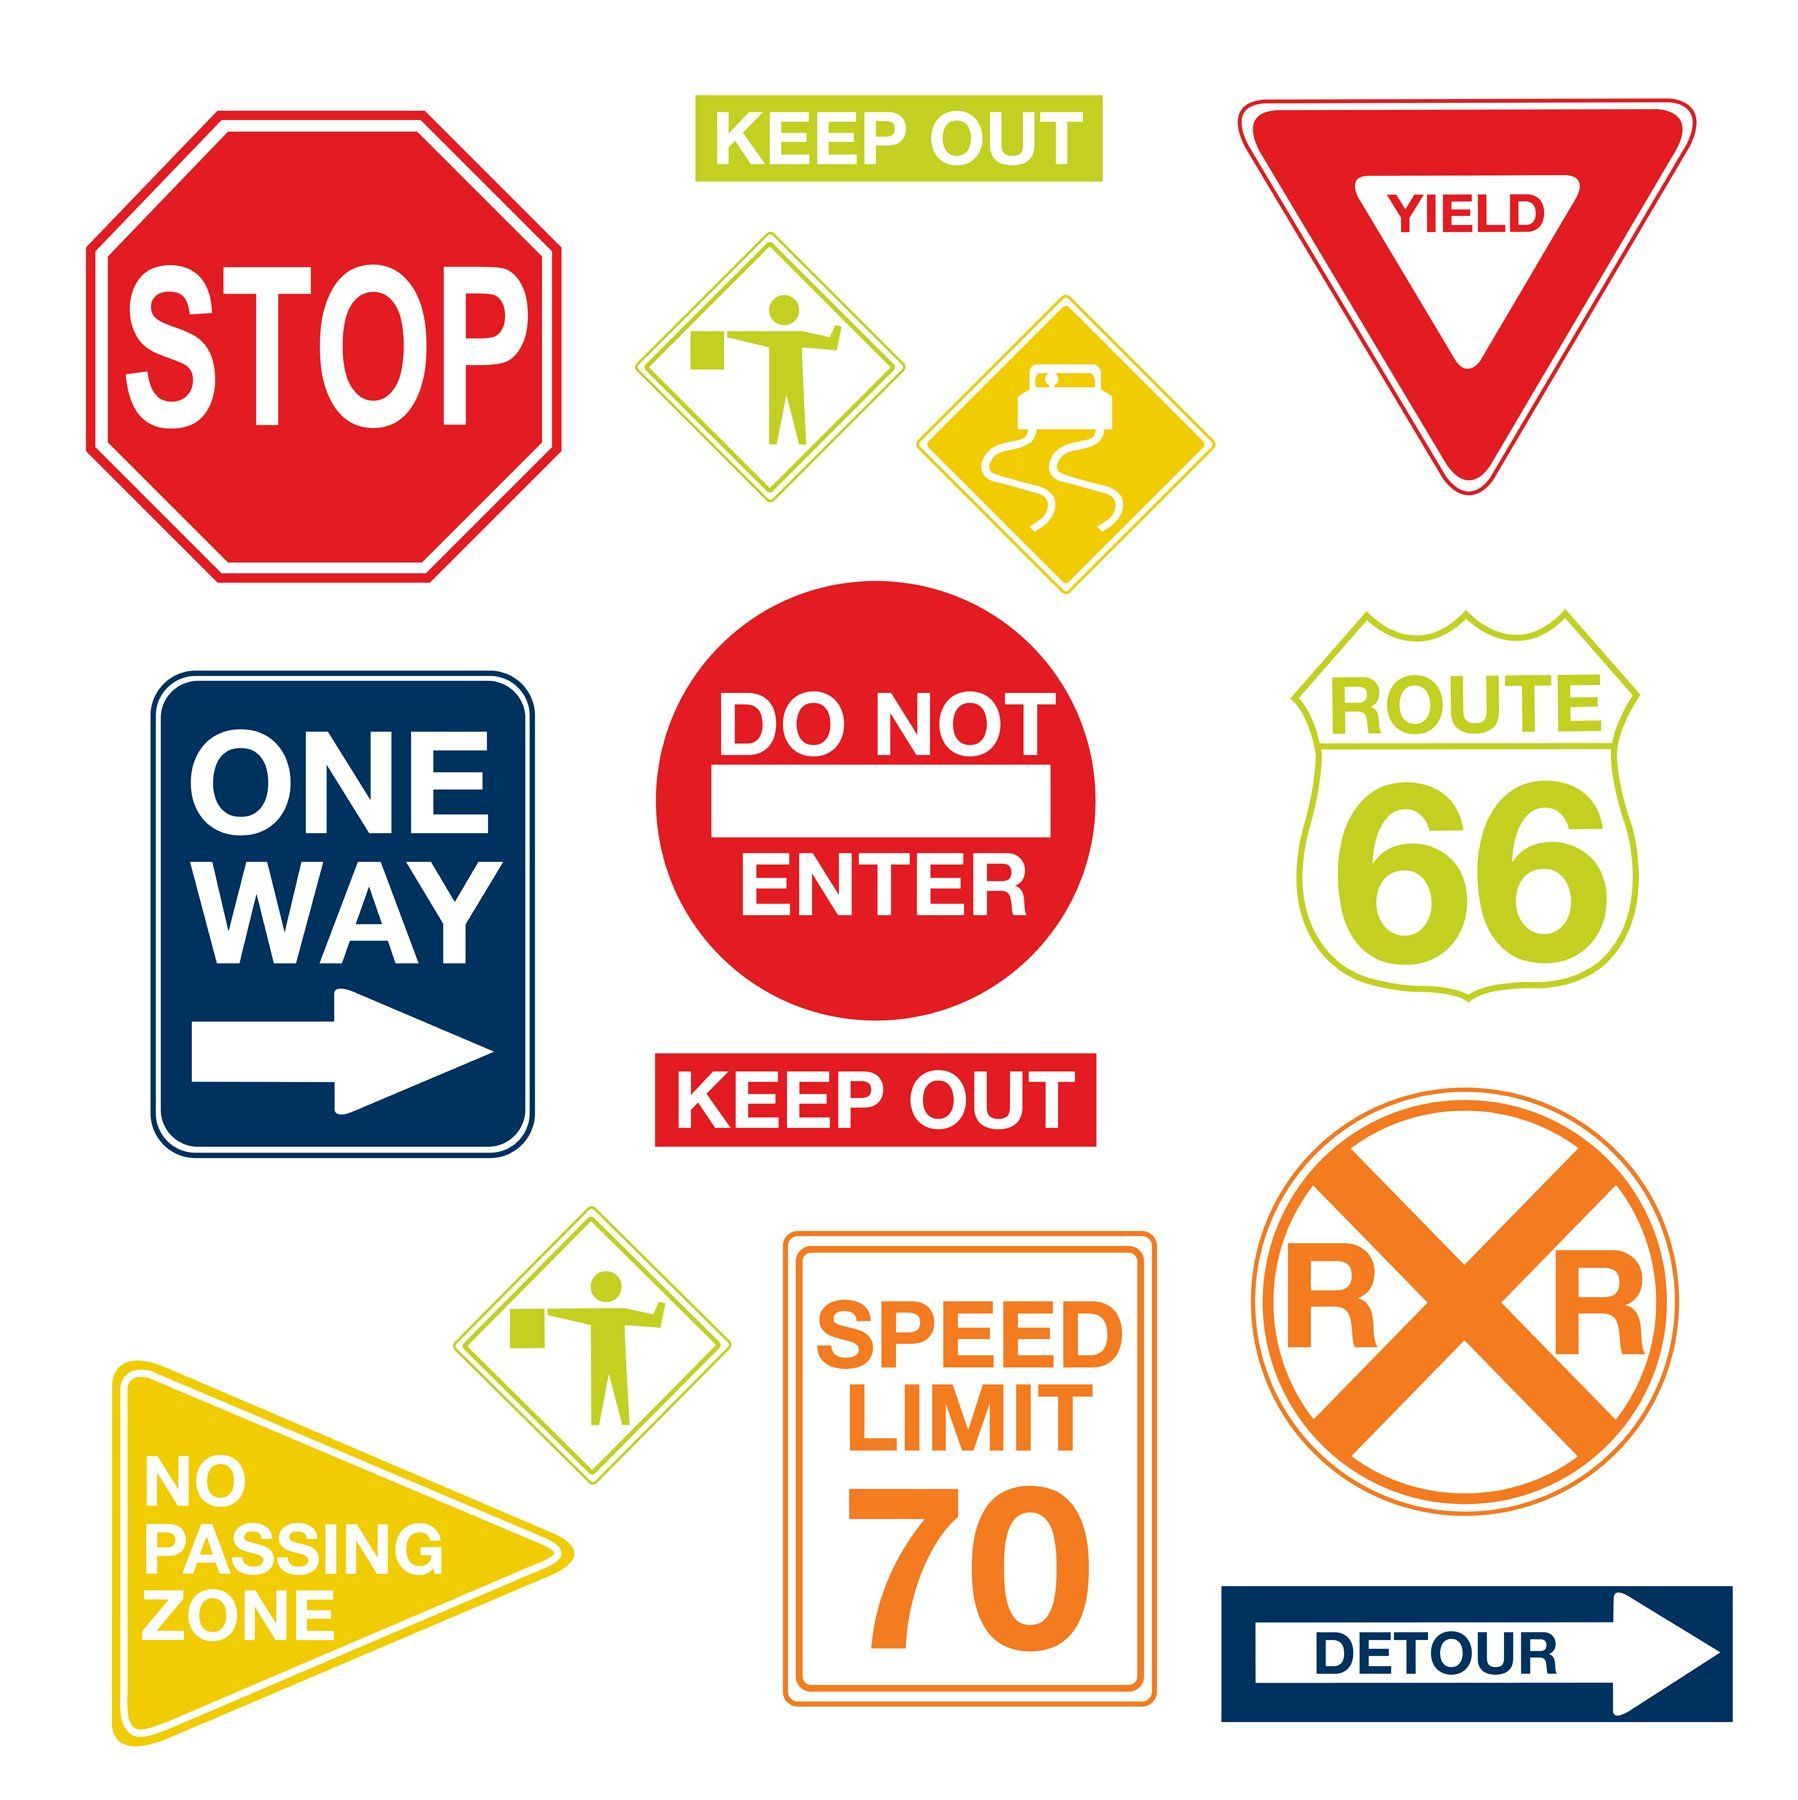 Wall Pops Wpk0617 Road Signs Decals 17 25 Inch By 39 Two Sheets